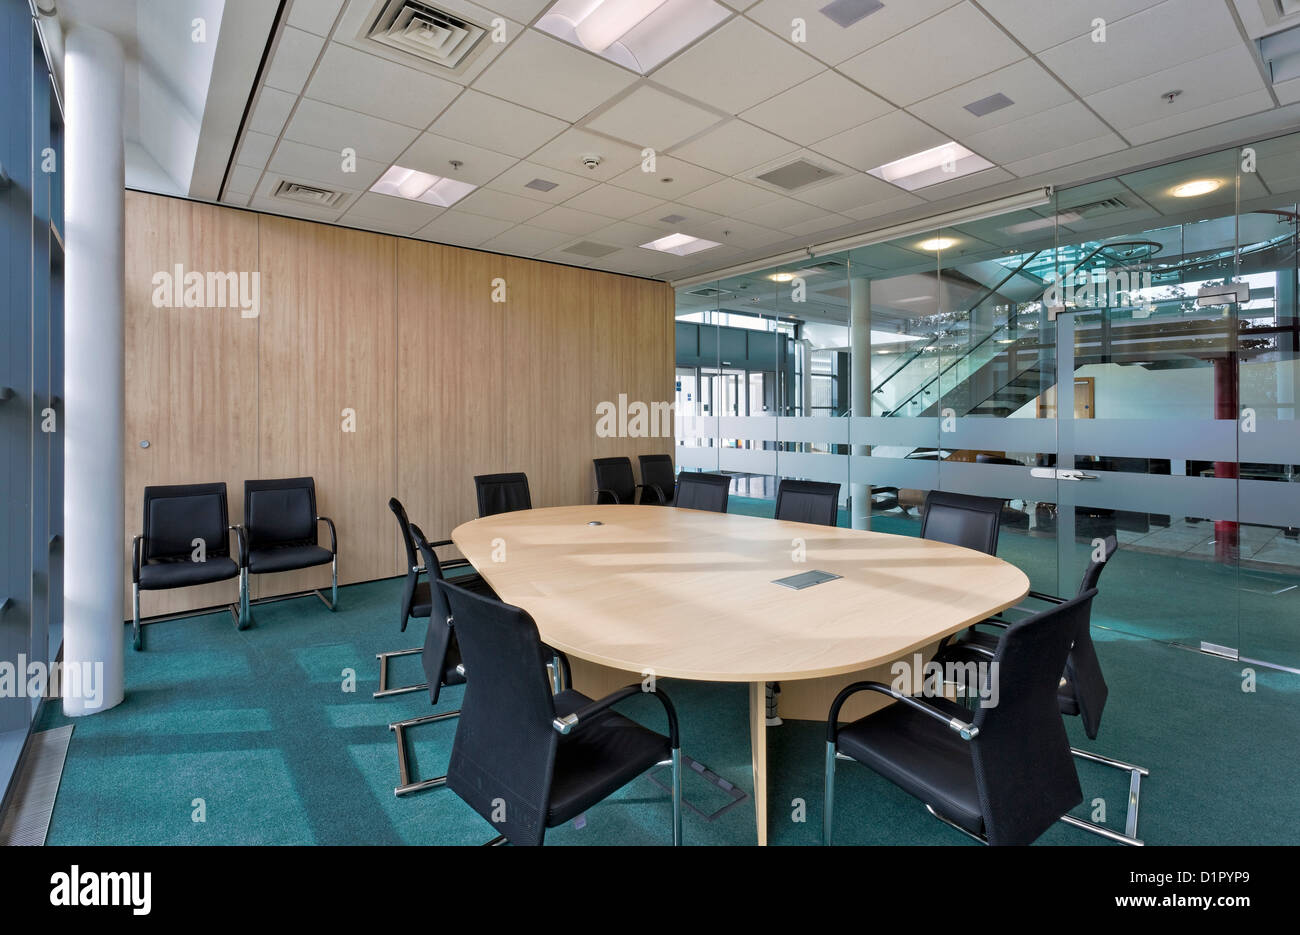 Kerrygold cheese factory and offices in leek staffordshire stock image